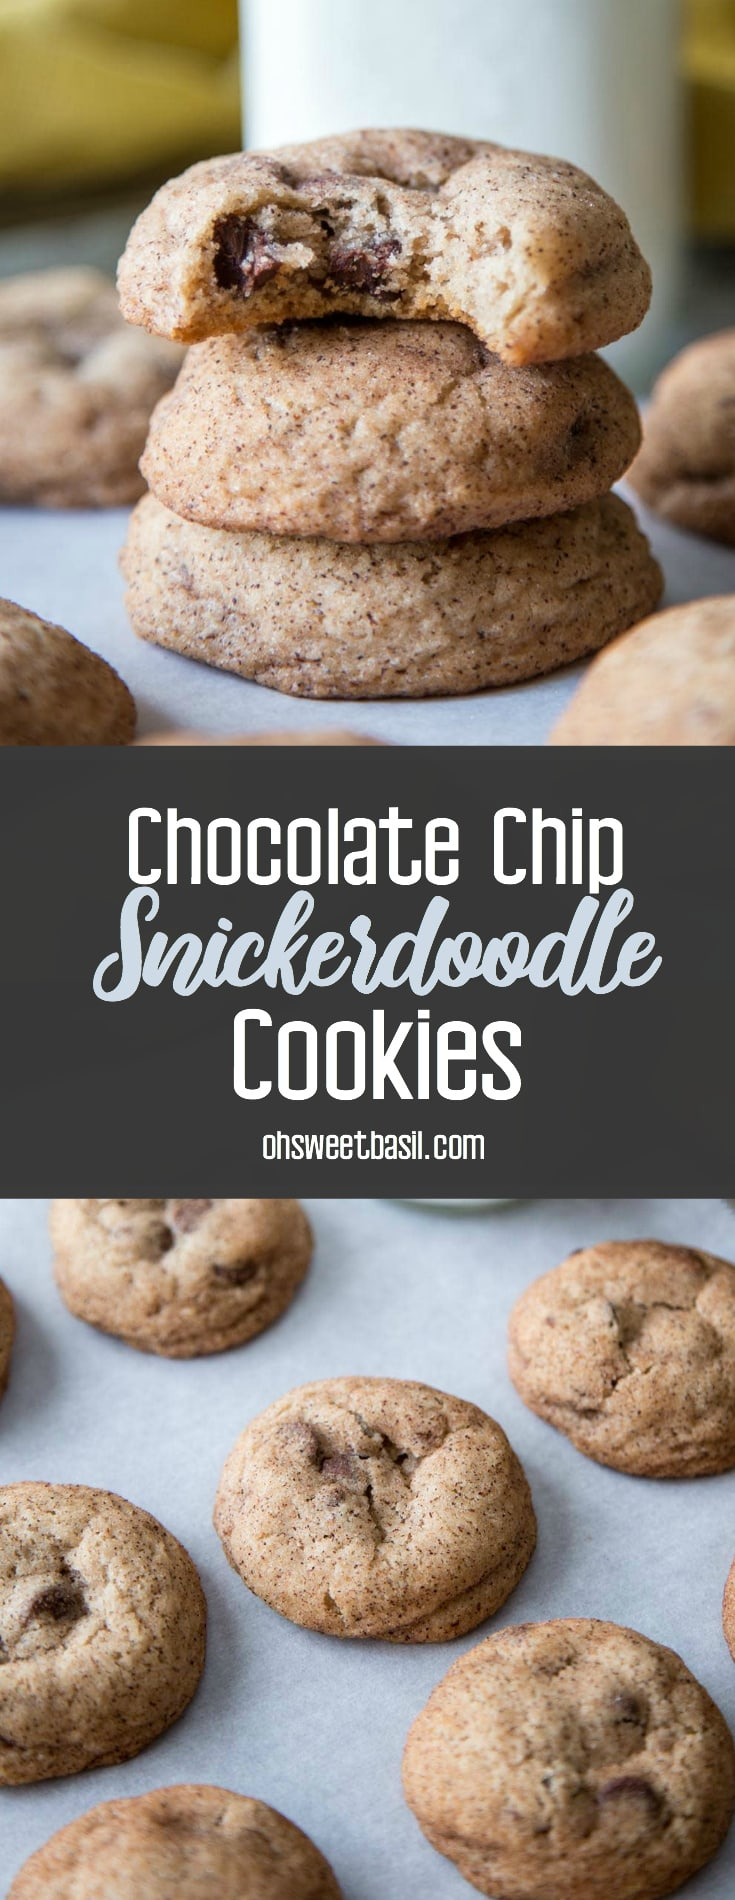 A stack of chocolate chip snickerdoodle cookies